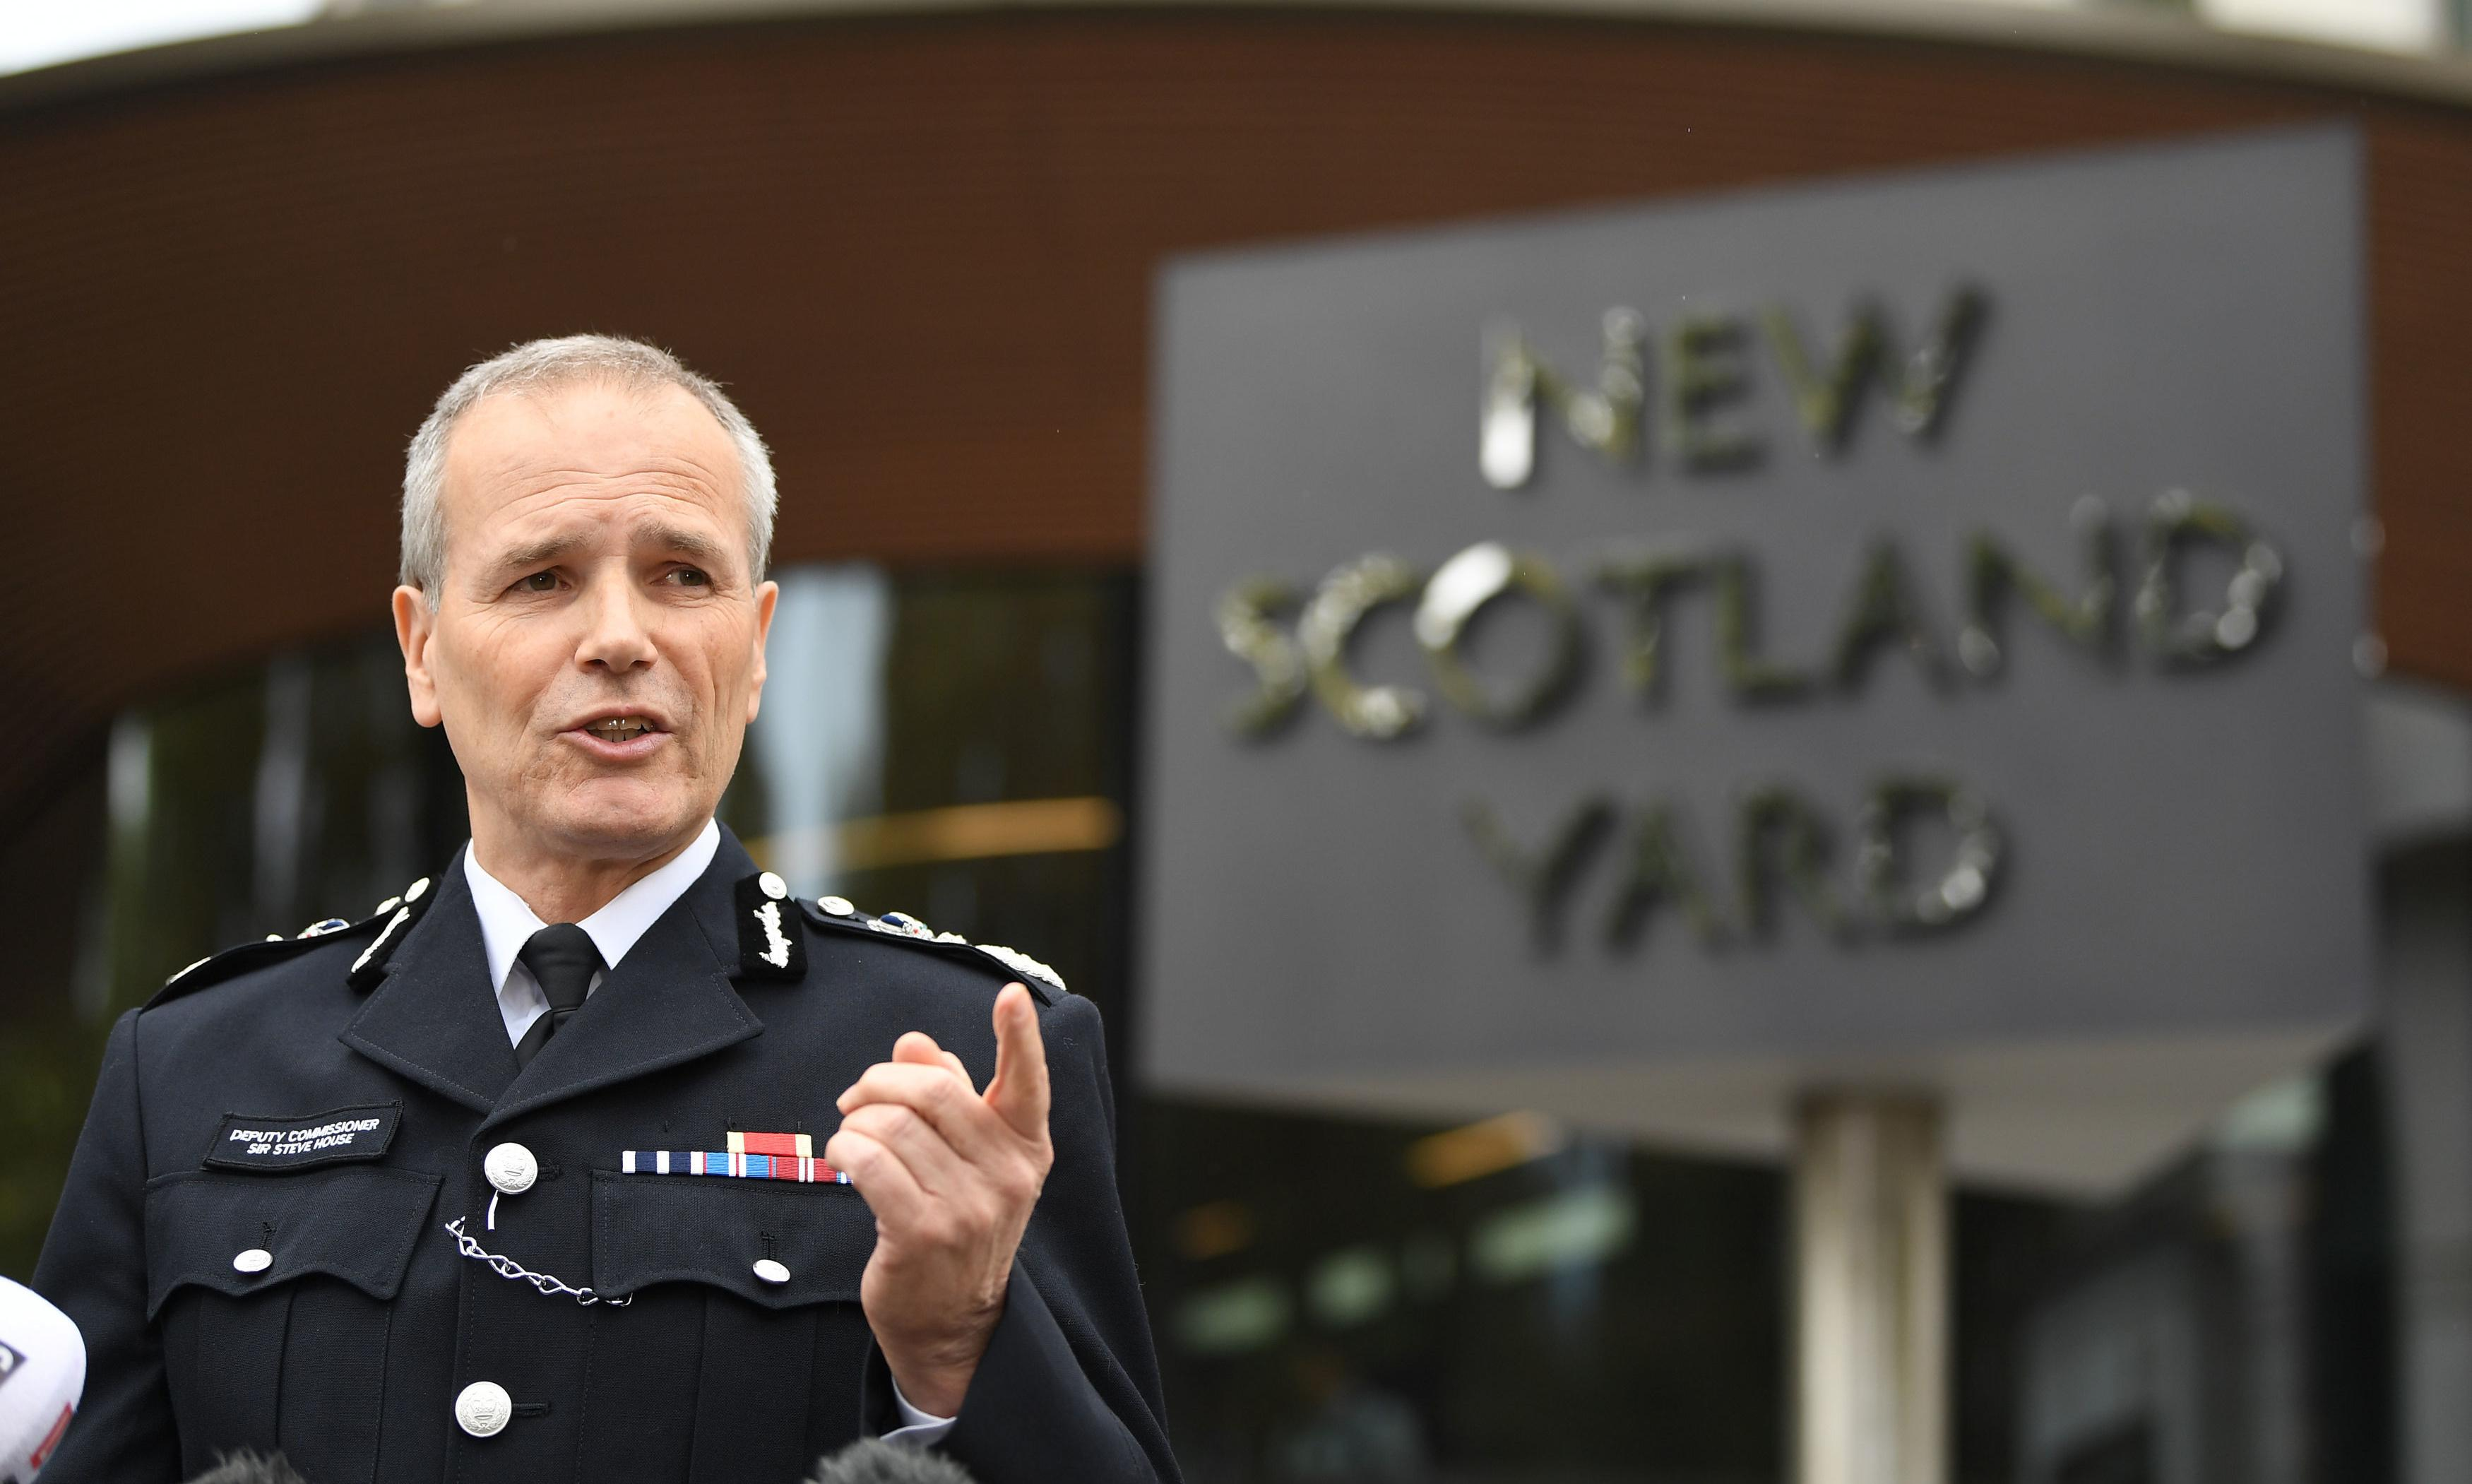 Operation Midland made mistakes, but the presumption of innocence must prevail